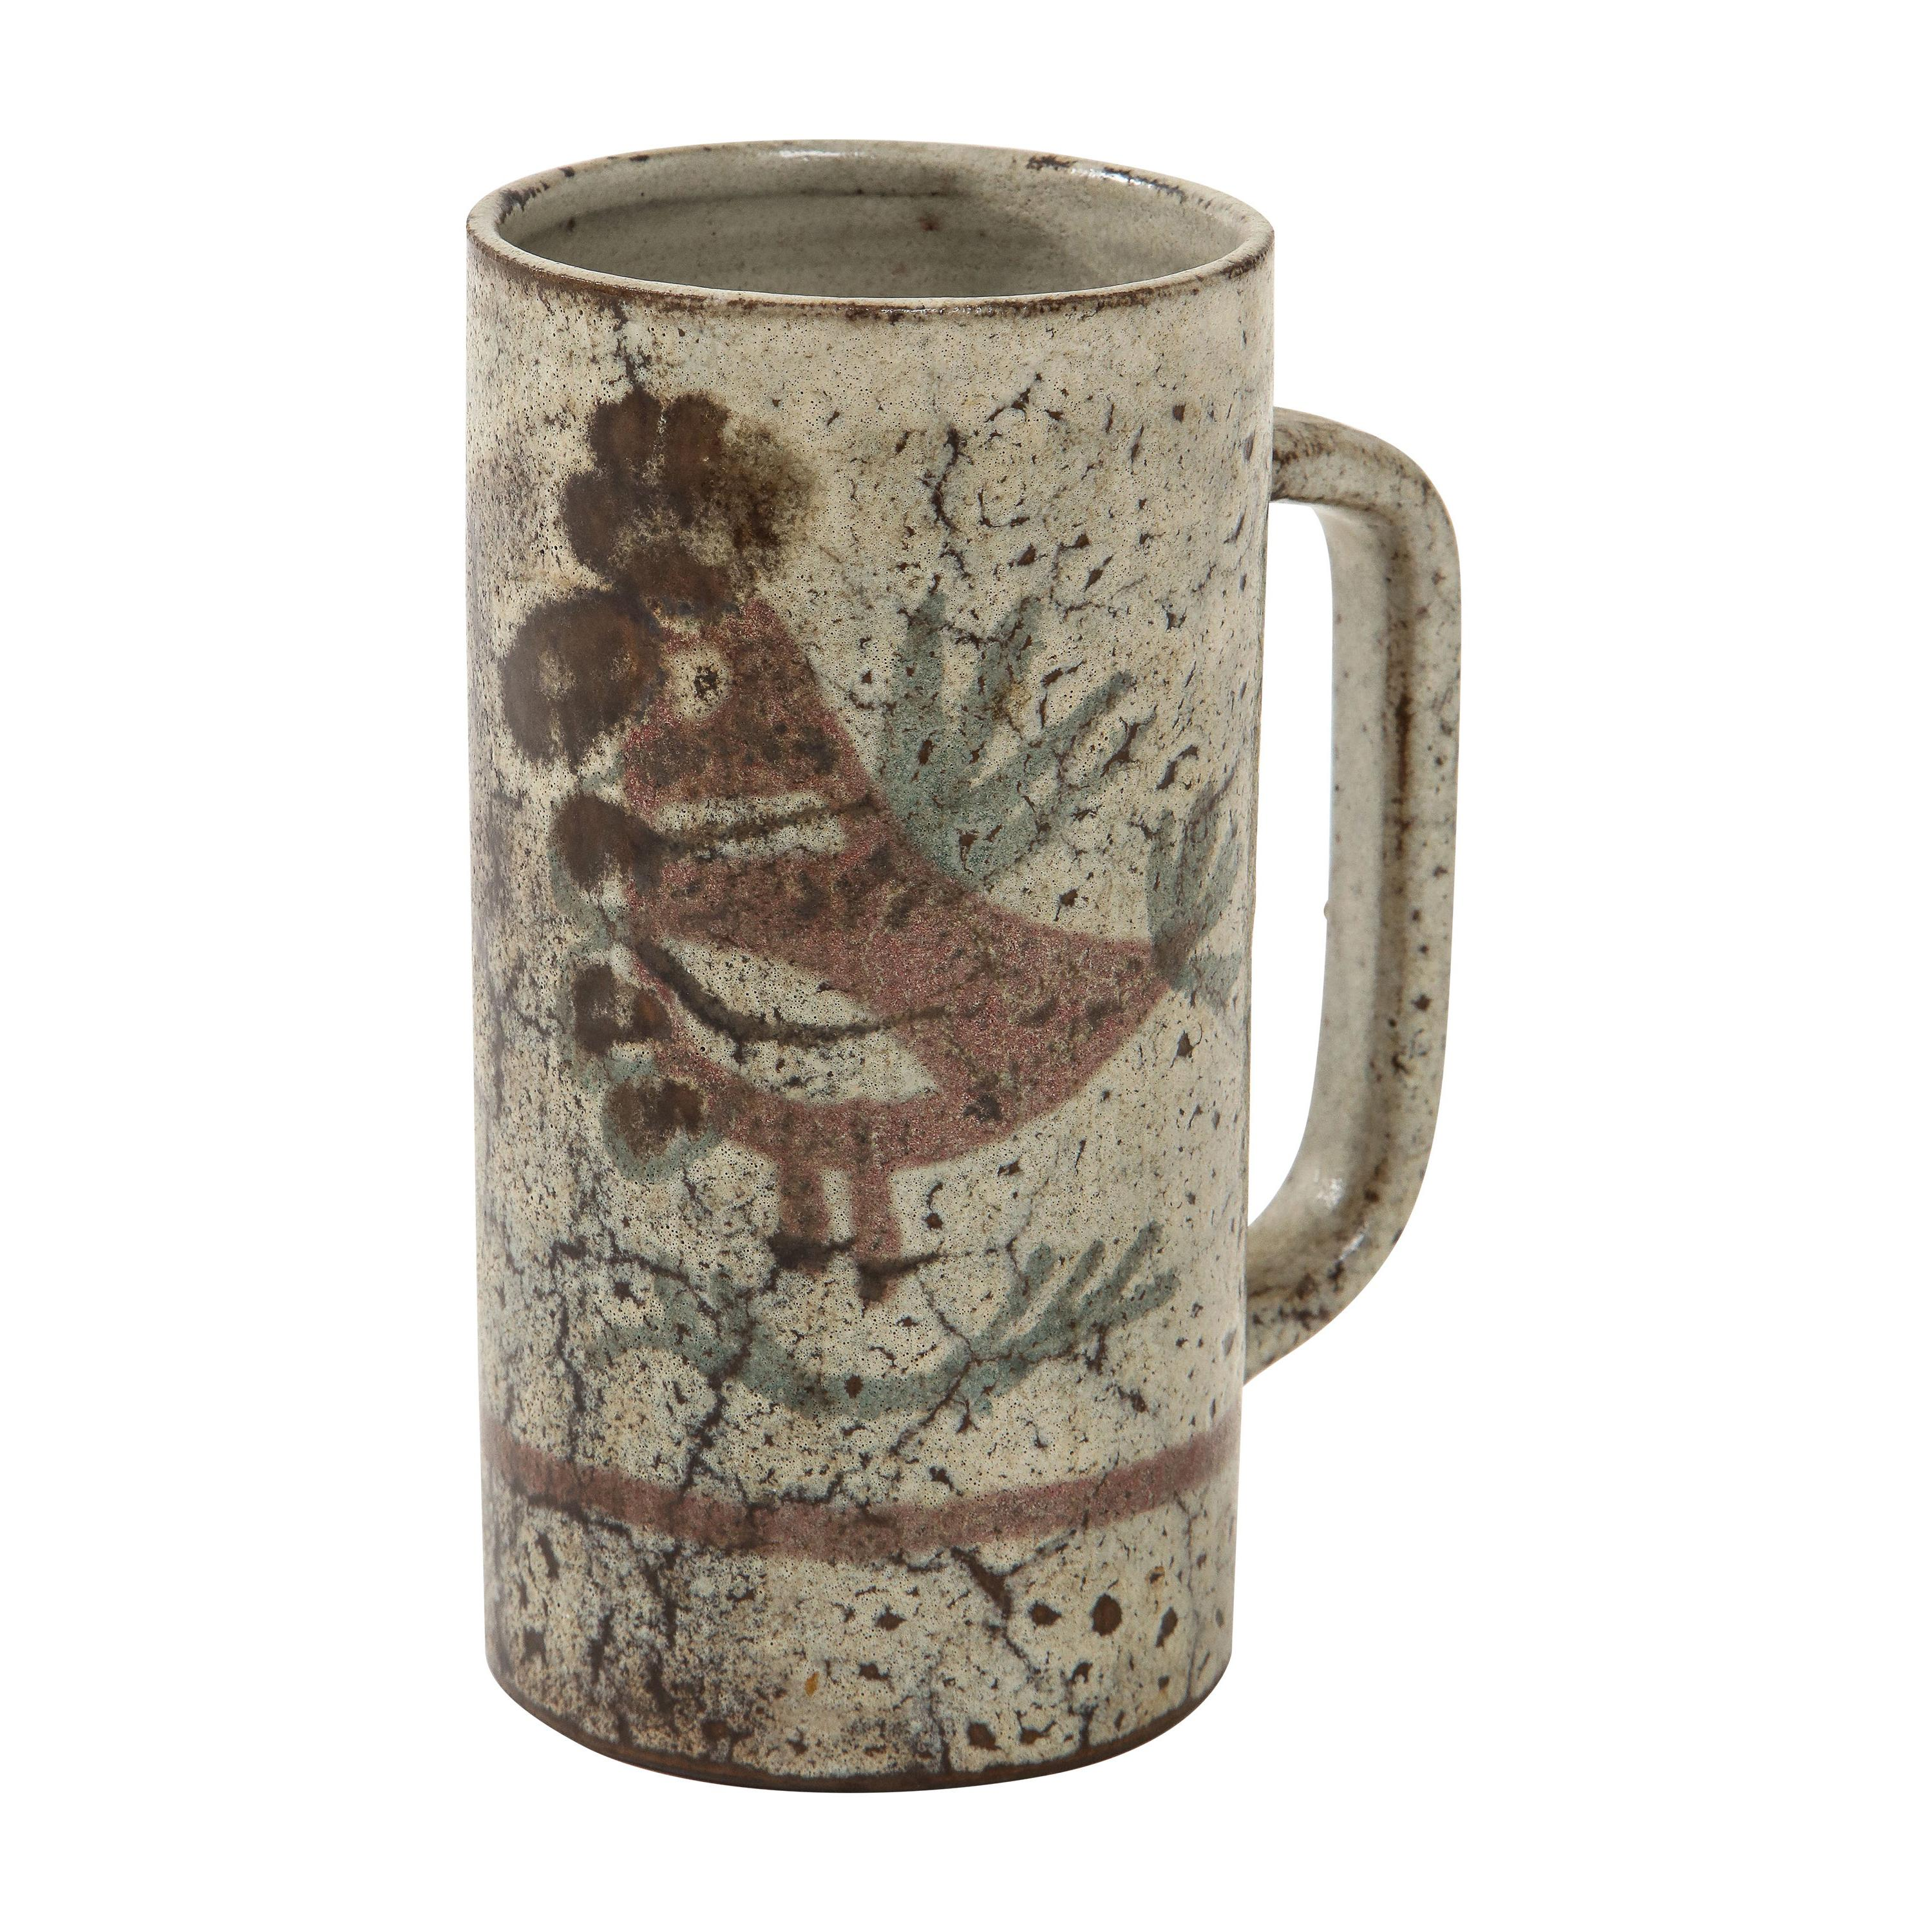 Decorative Hand-Painted Ceramic Jug by Gustave Raynaud, Vallauris, France, 1960